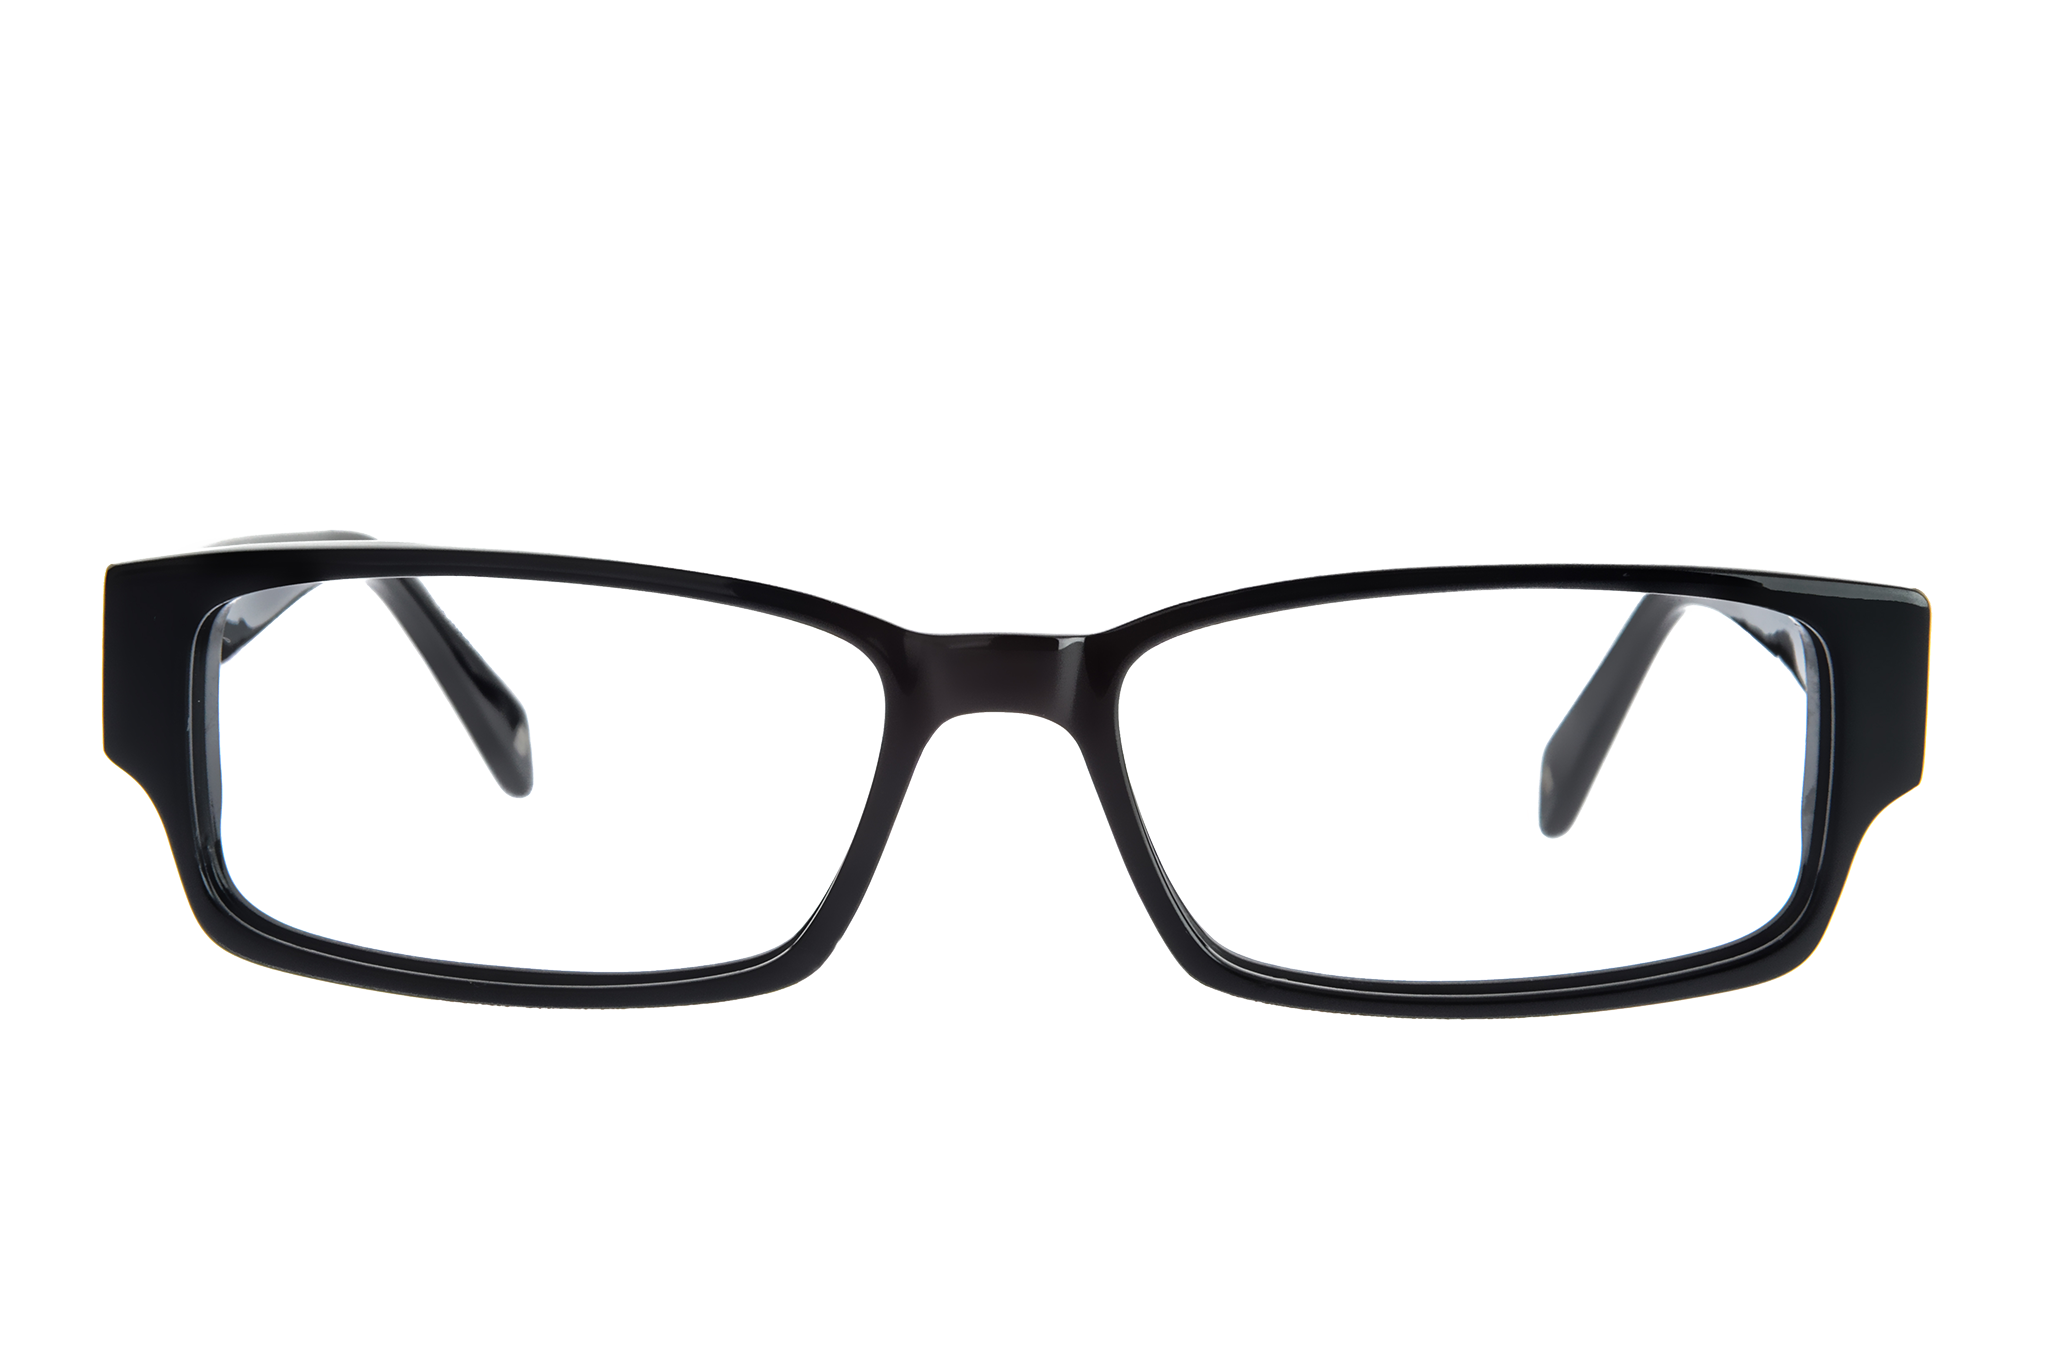 Transparent Frame Fashion Glasses : Cartoon Black Shades Png - ClipArt Best